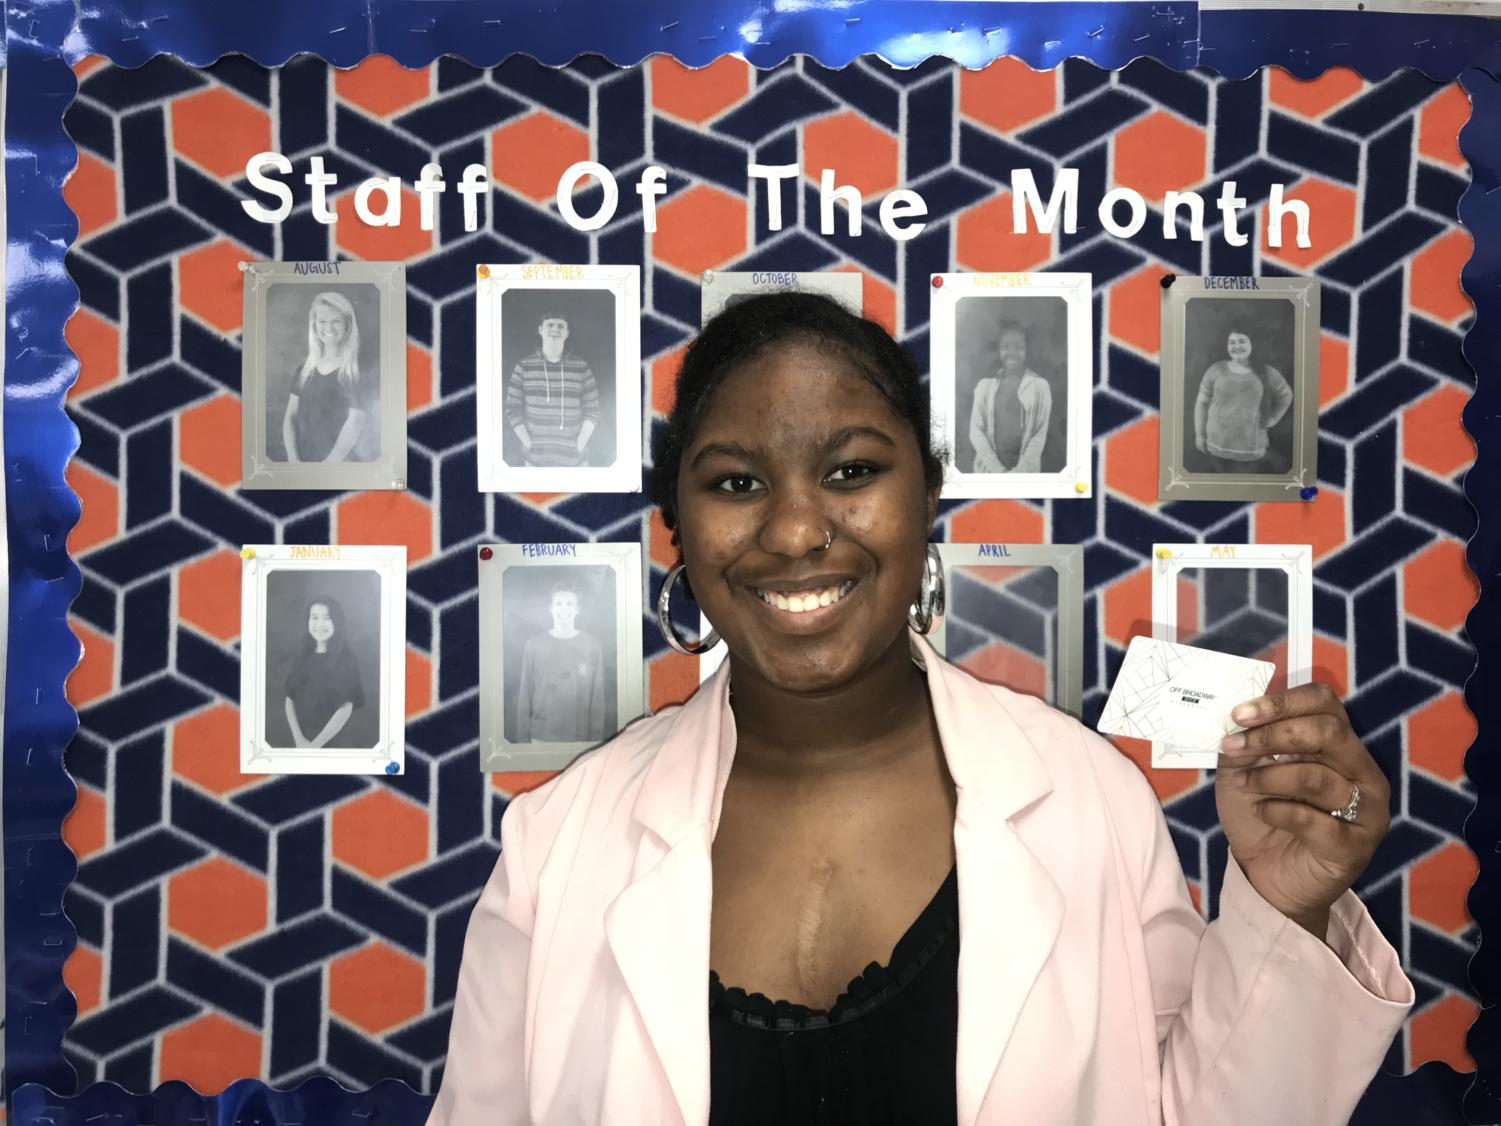 Congratulations to our March Staff of the Month! Nikera Simpson, won a gift card to Off Broadway, courtesy of our partner The Avenue.